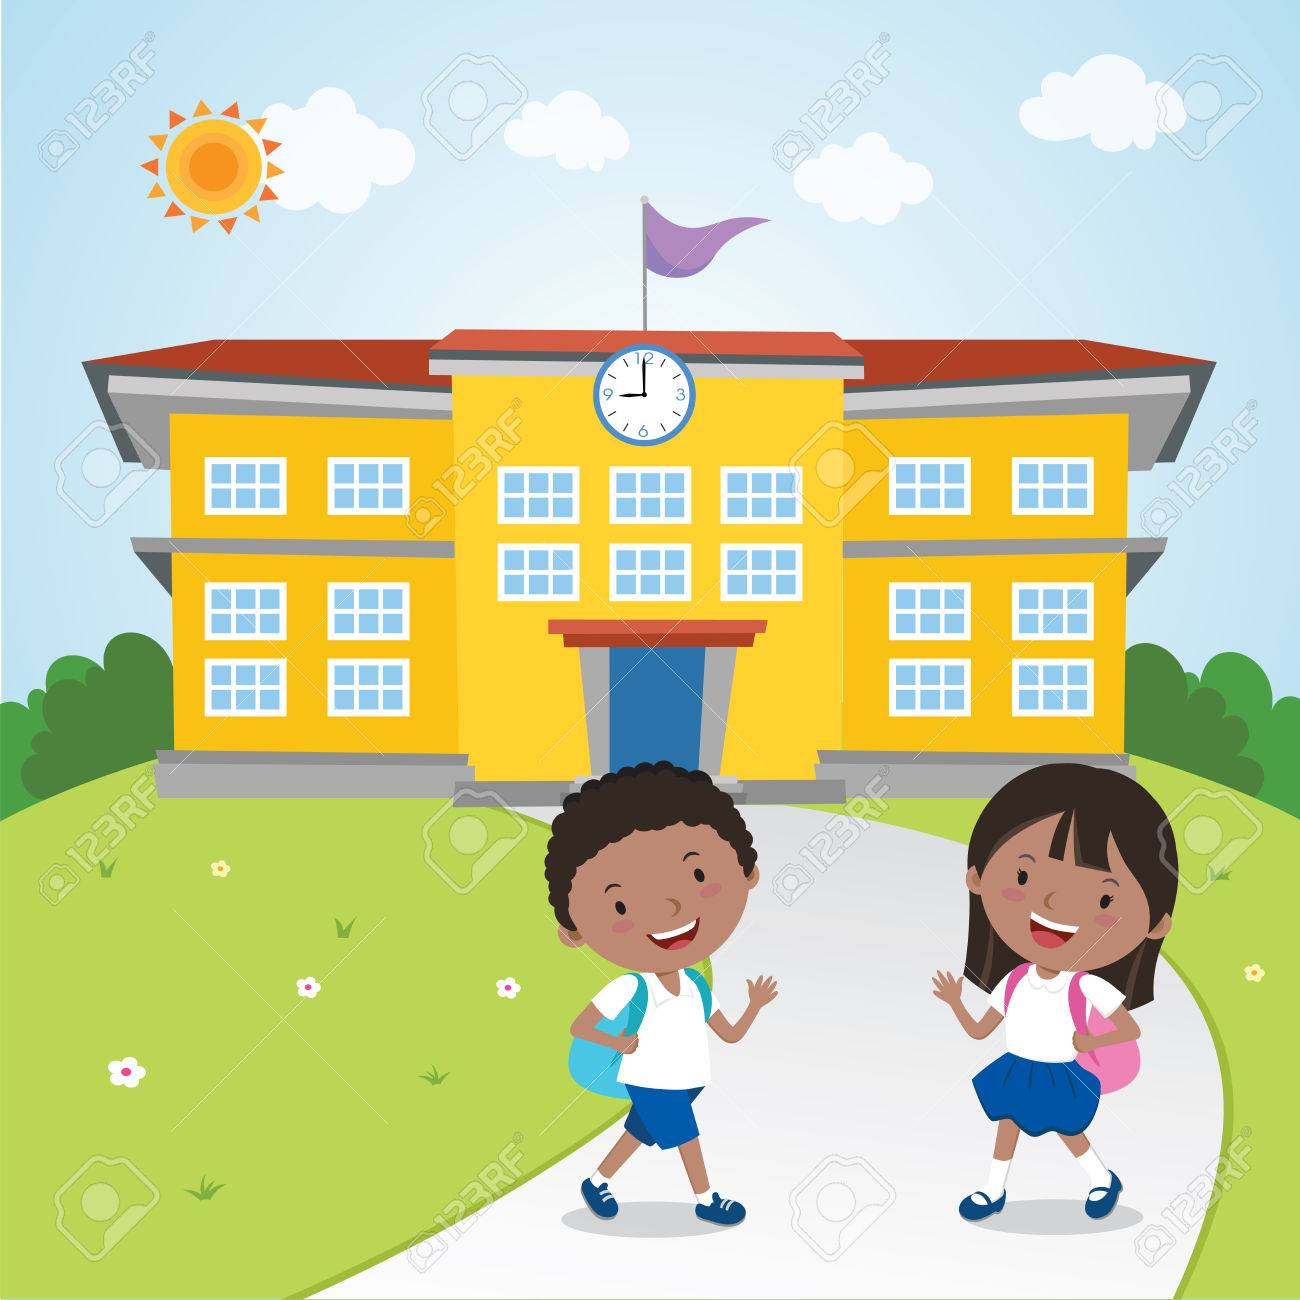 Children Go To School Royalty Free Cliparts, Vectors, And Stock ...